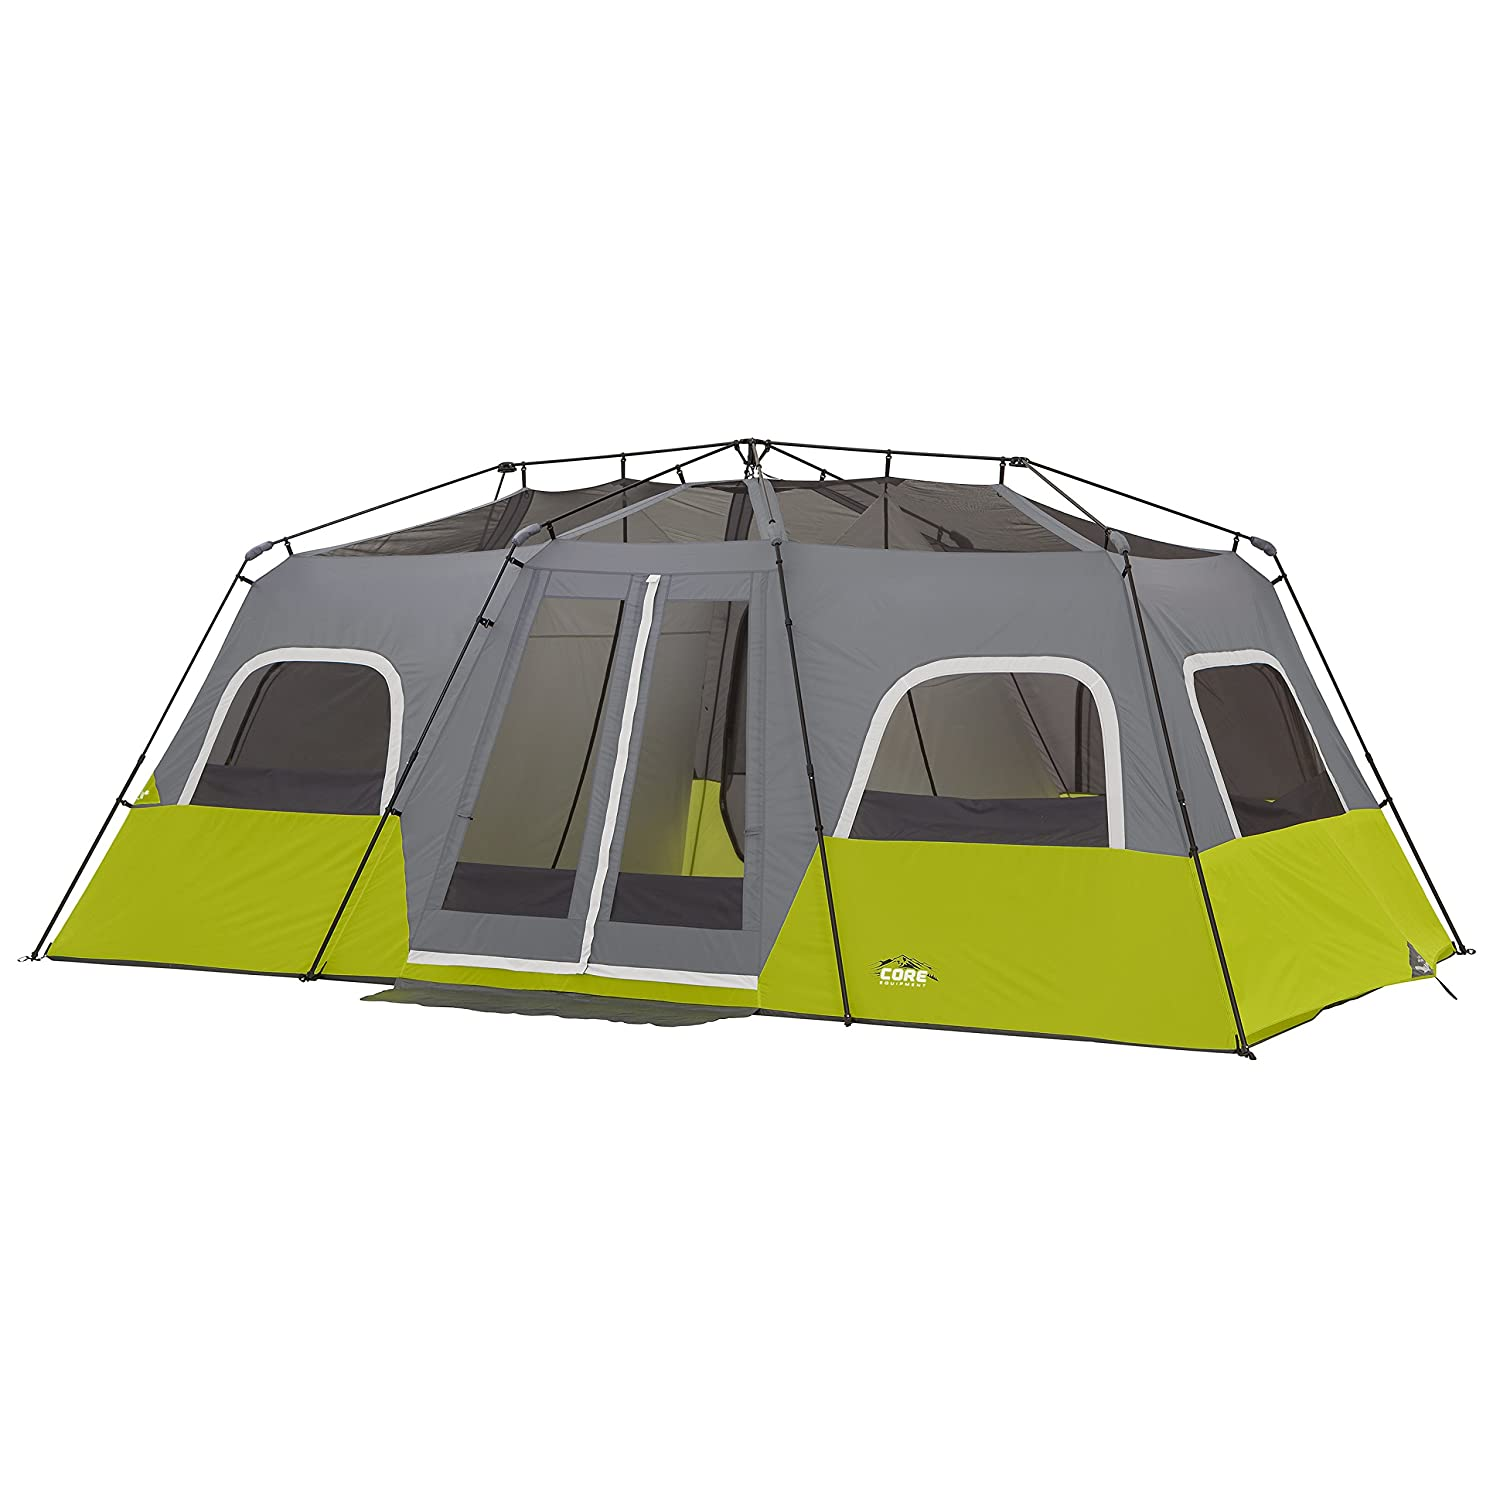 Amazon.com  CORE 12 Person Instant Cabin Tent - 18u0027 x 10u0027  Sports u0026 Outdoors  sc 1 st  Amazon.com : coleman tent costco 4 person - memphite.com